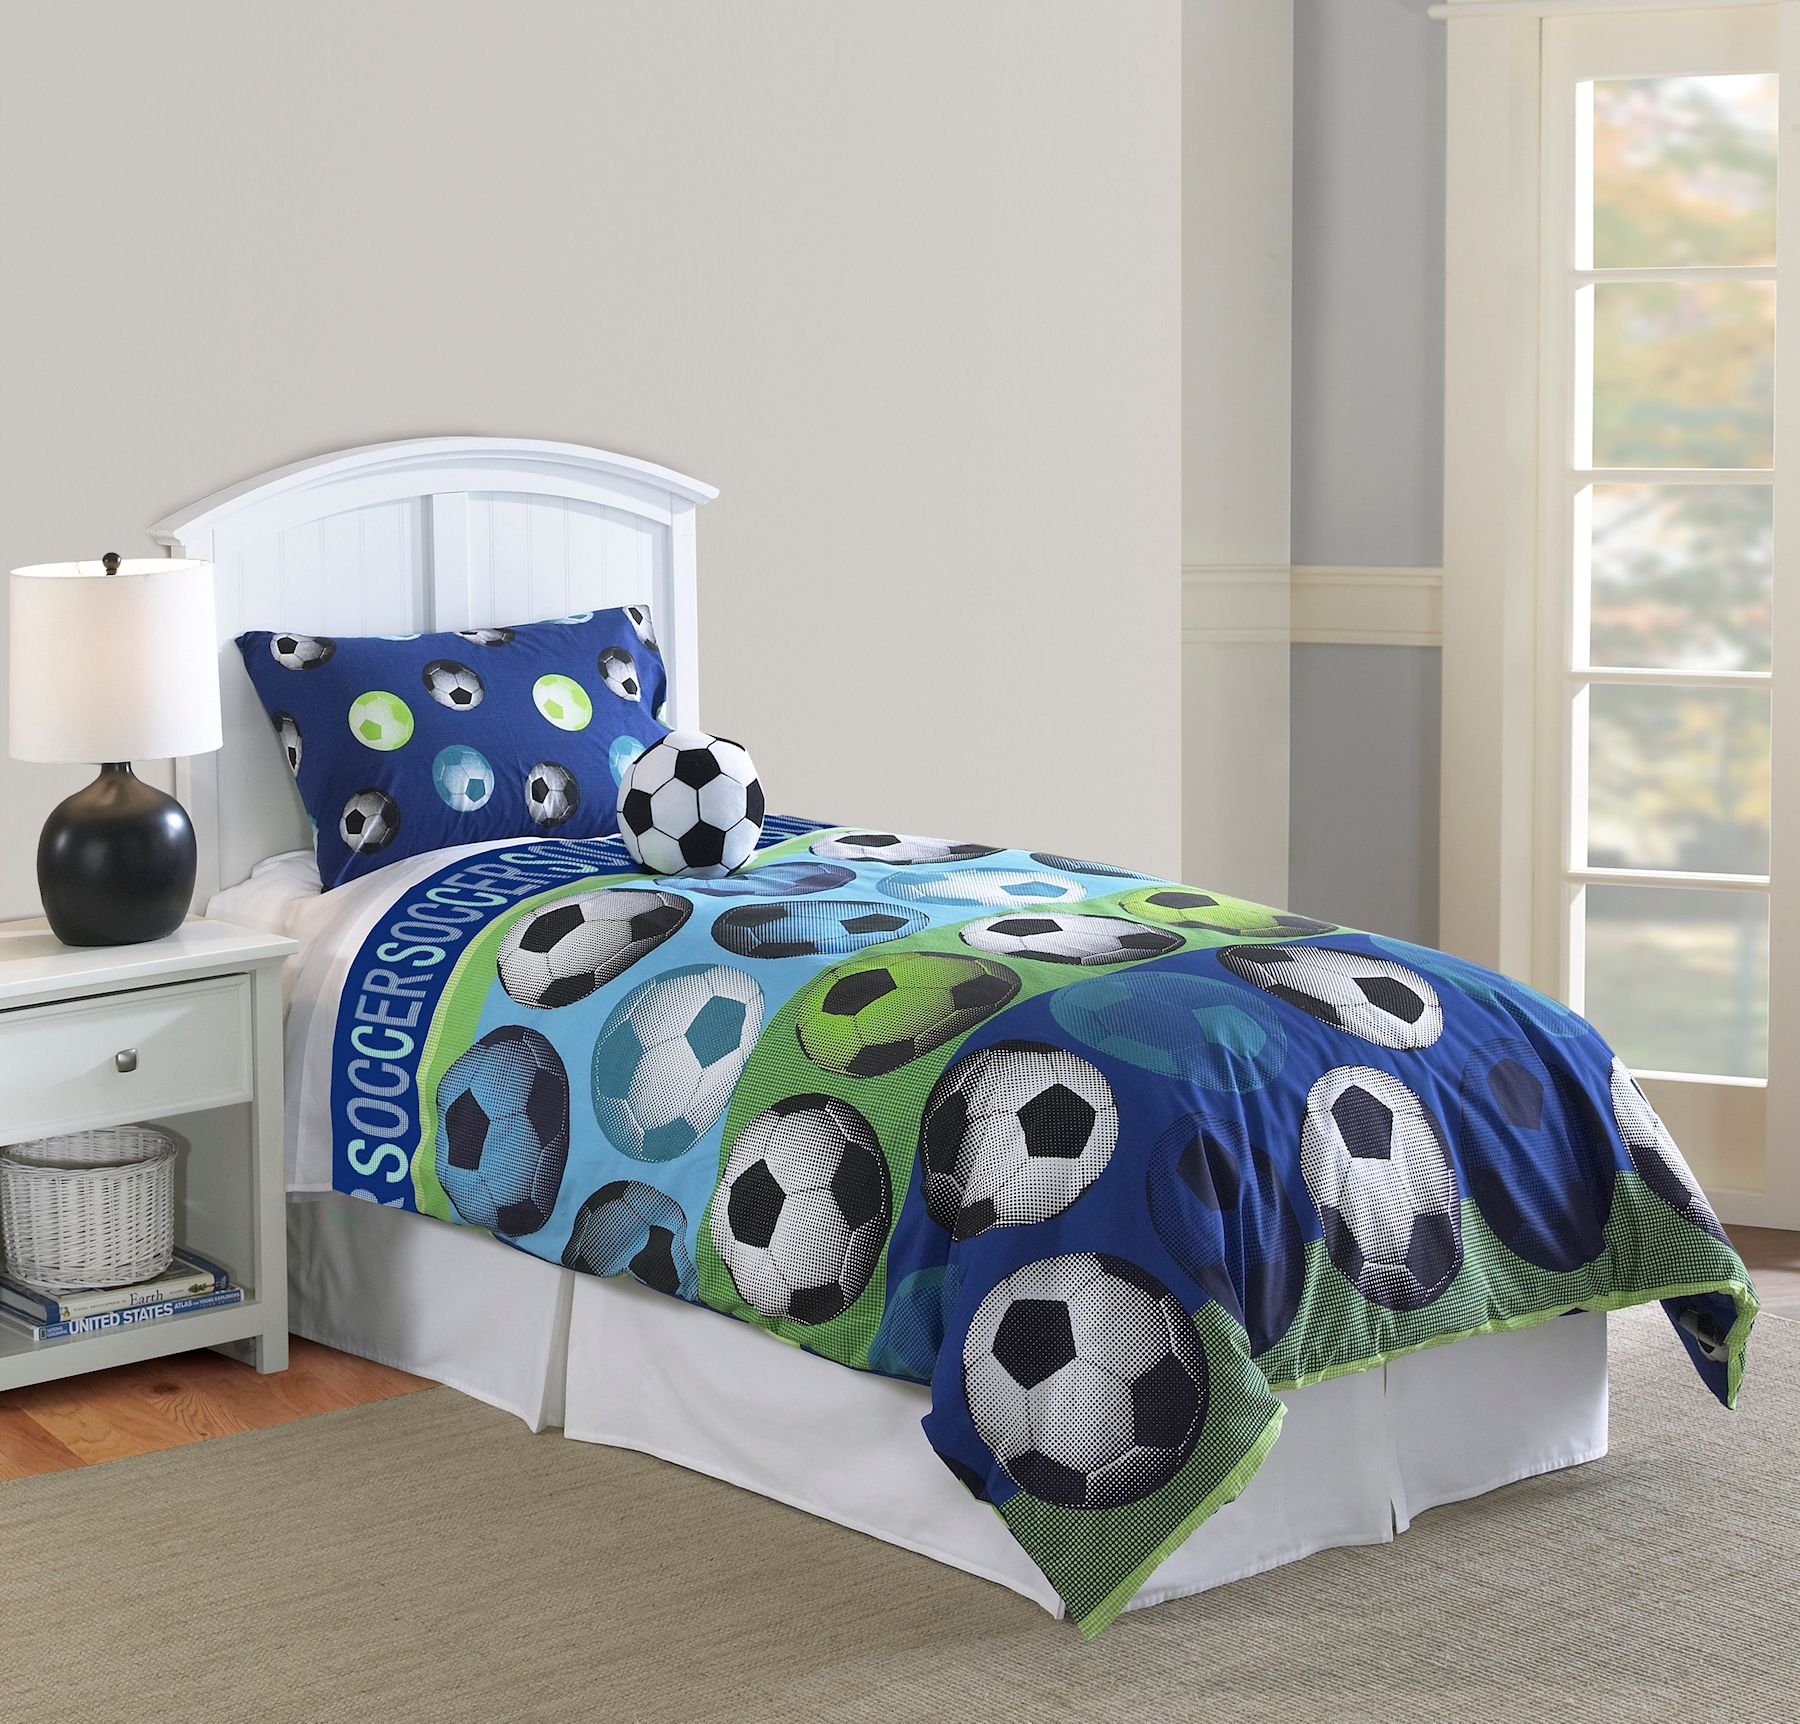 Little Boy Twin Bed Blue Green Soccer Ball Bedding Twin Full Queen Comforter